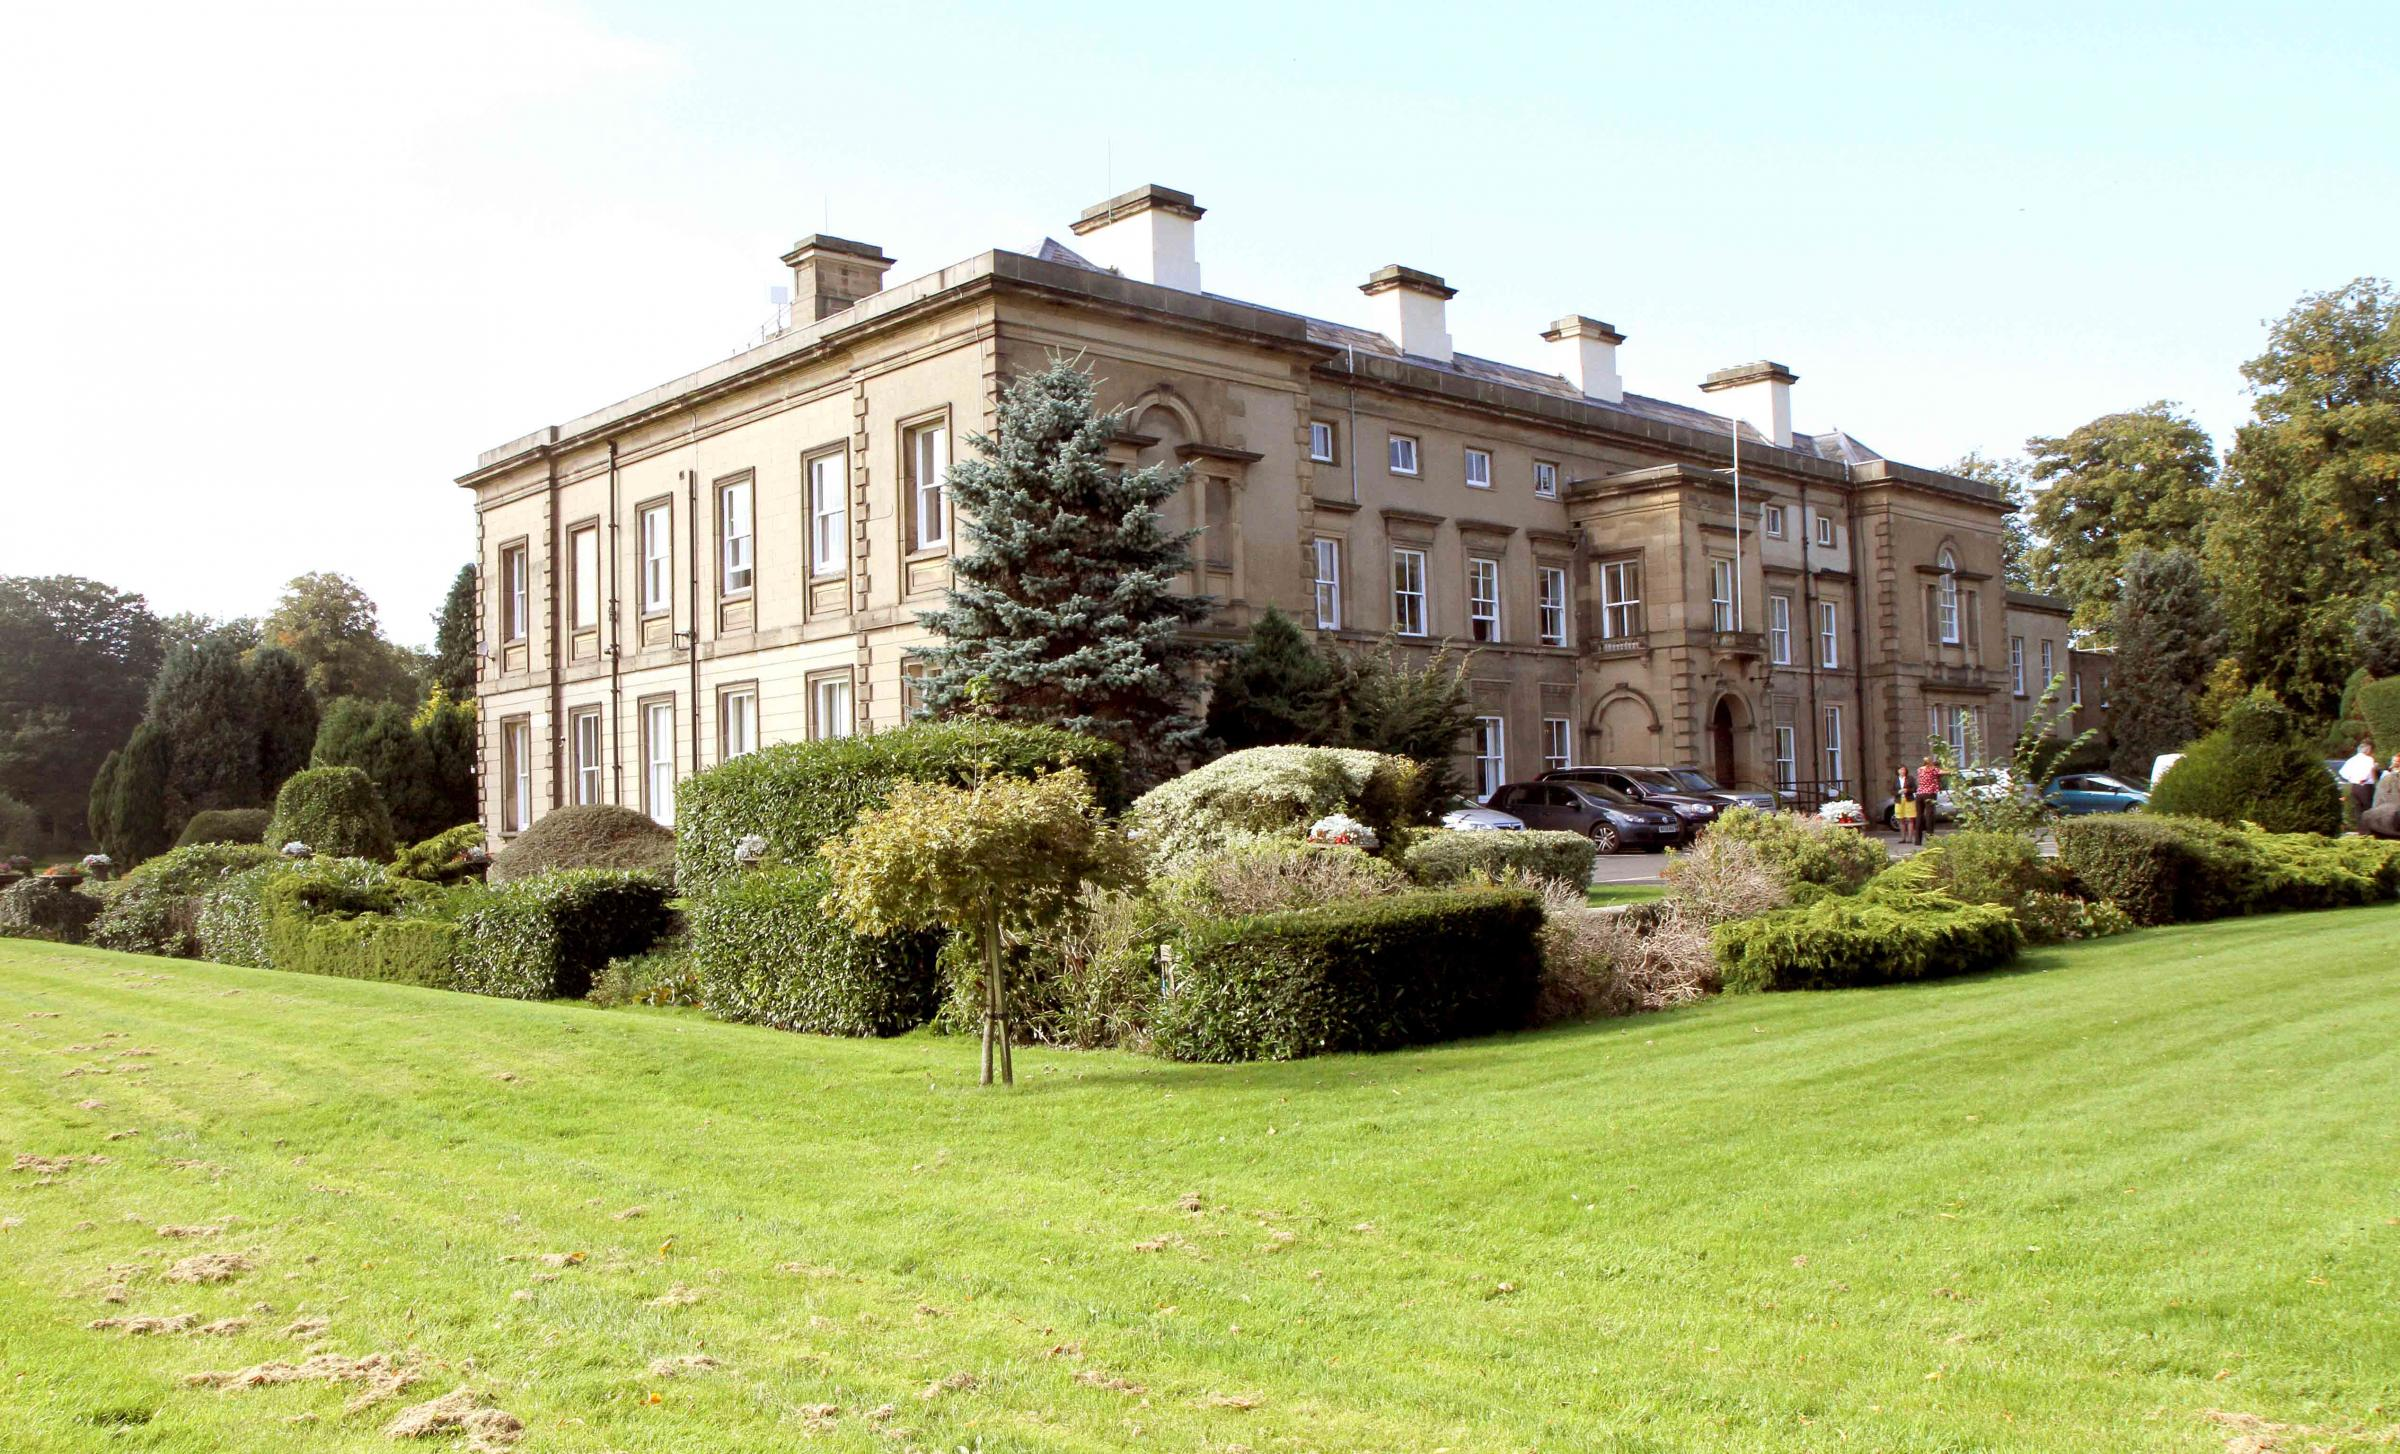 Plans to move the North Yorkshire Police HQ from Newby Wiske have been abandoned